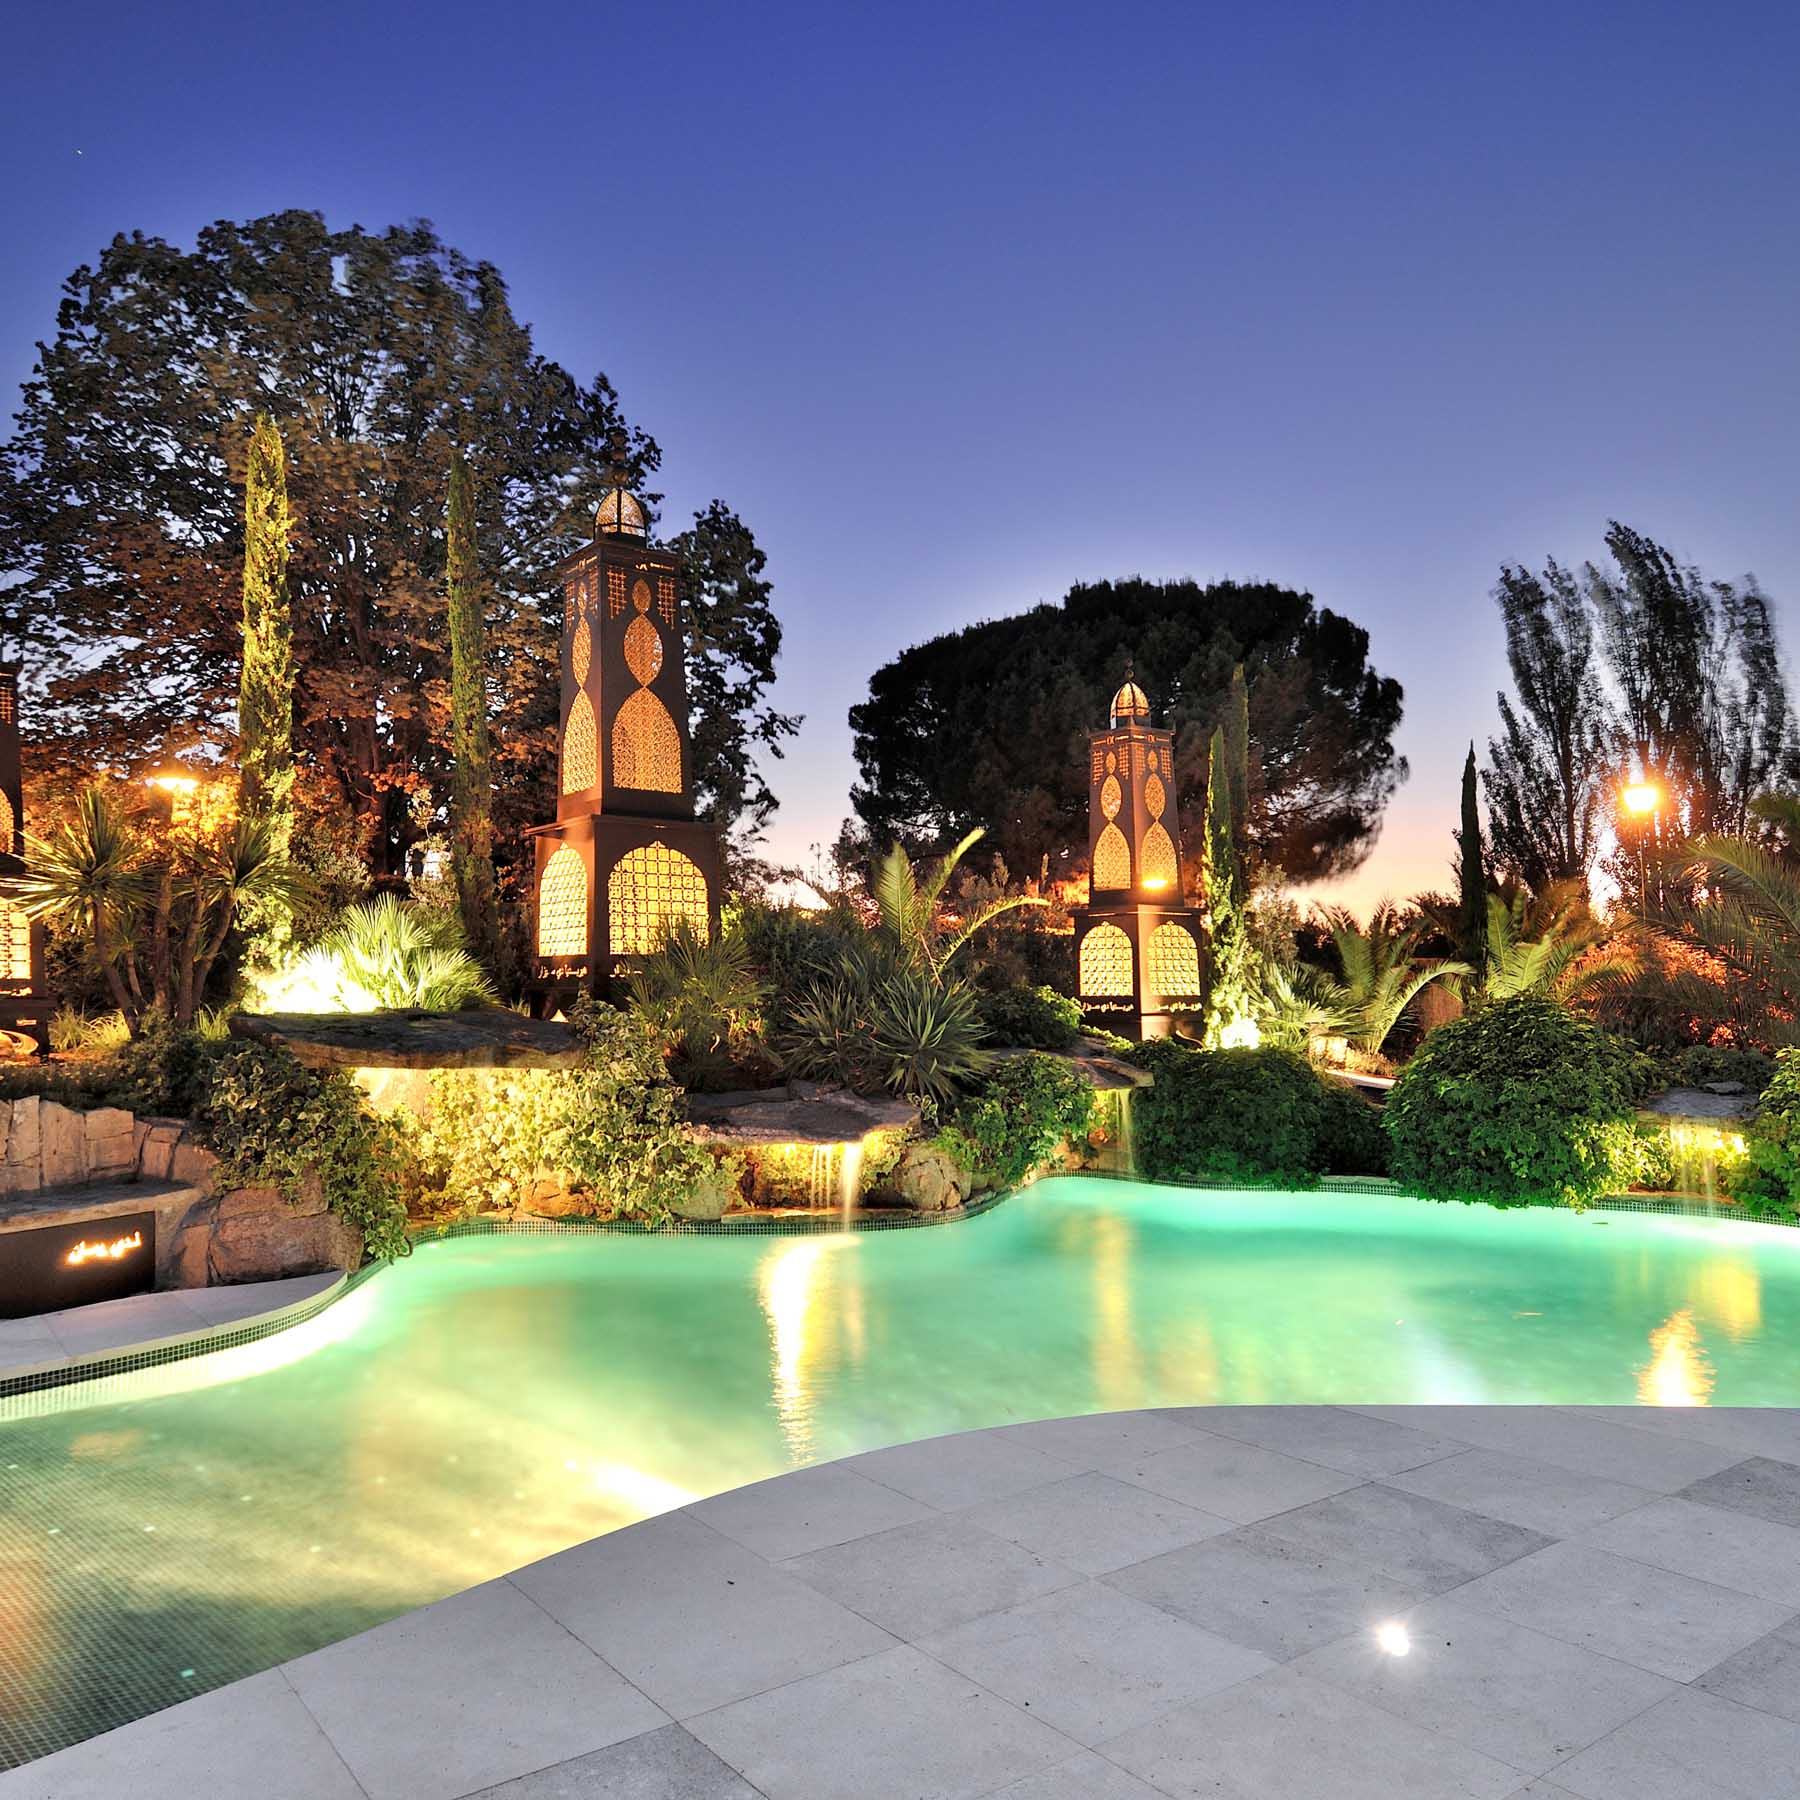 Private garden with swimming pool and lanterns.